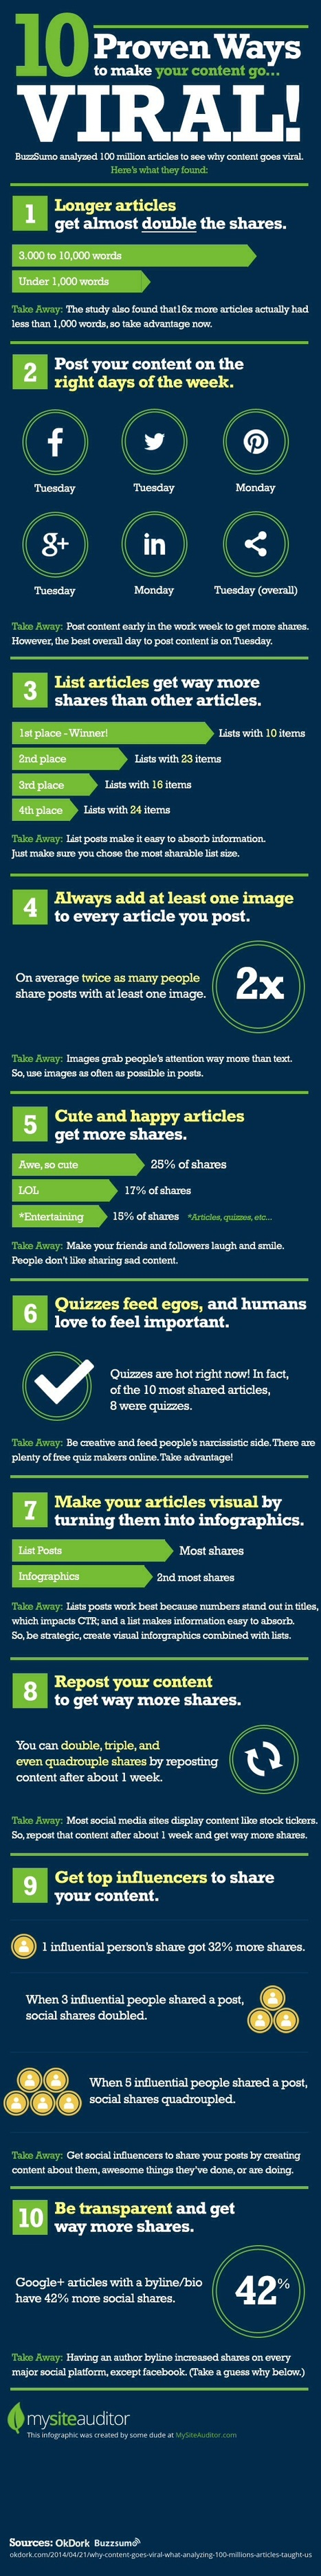 10 Proven Ways to Make Your Content Go Viral [Infographic] | Blogging, wordpress | Scoop.it